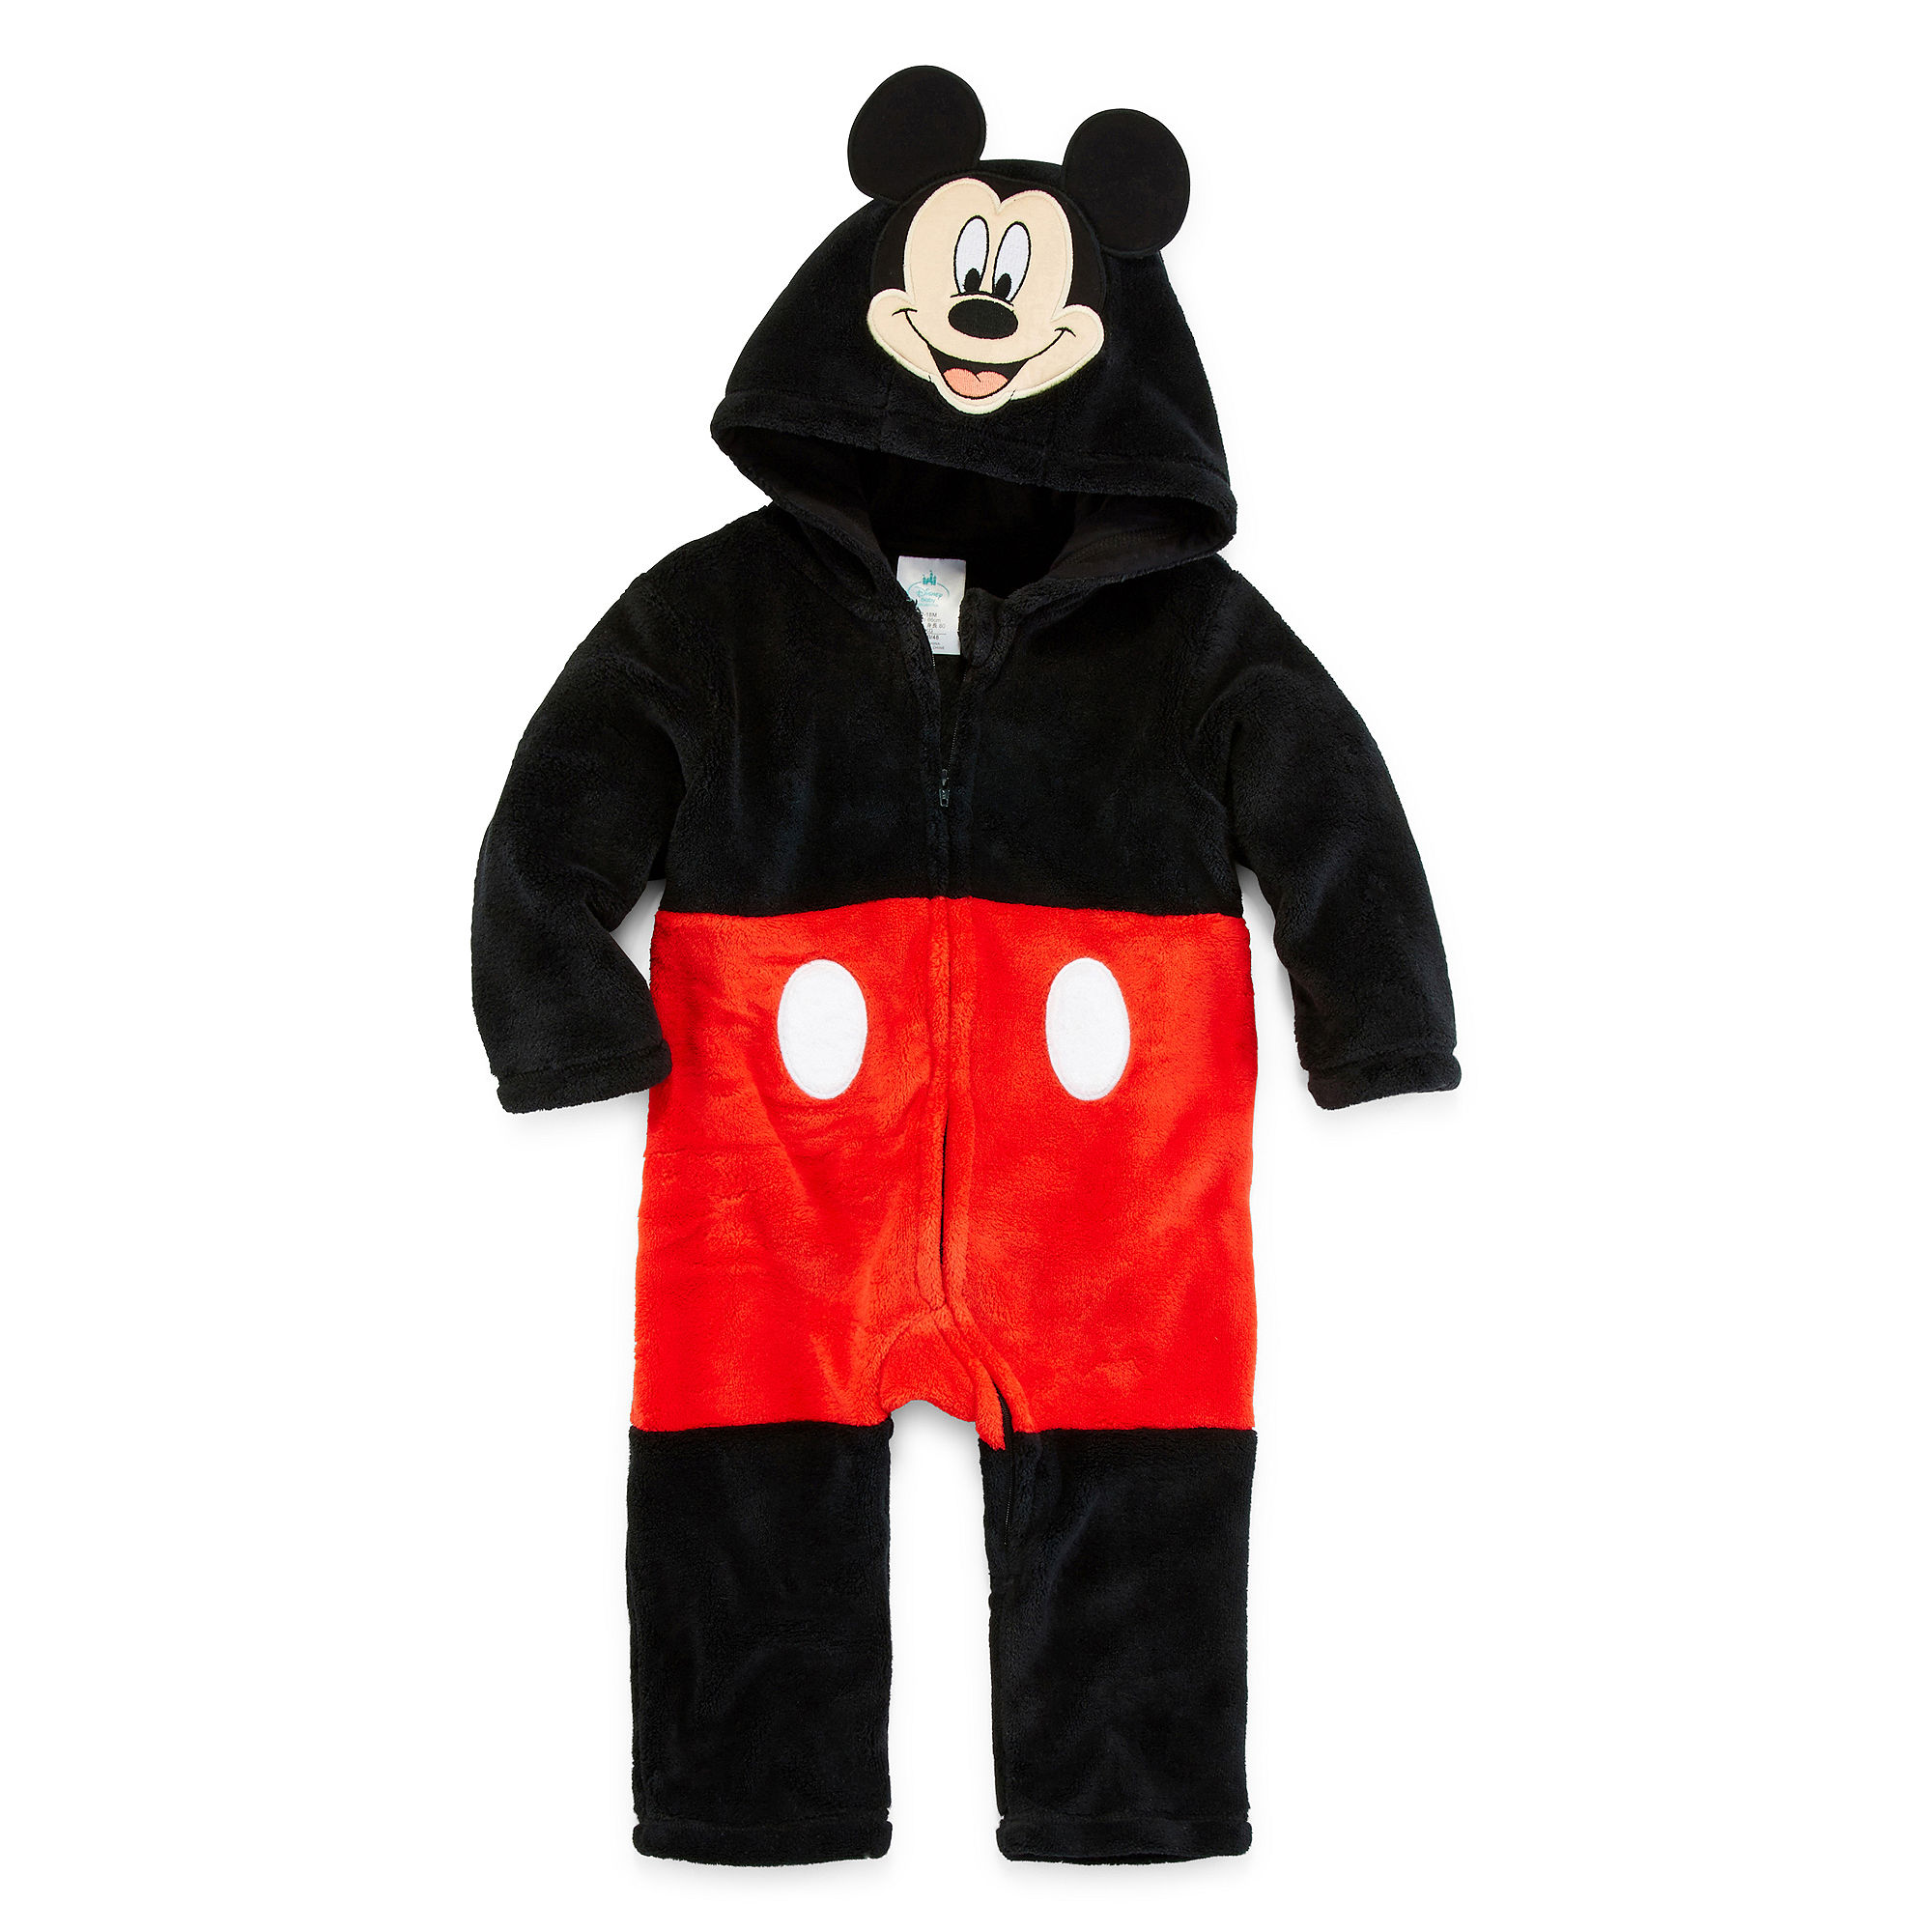 Disney Baby Collection Mickey Mouse Costume - Boys 3m-24m